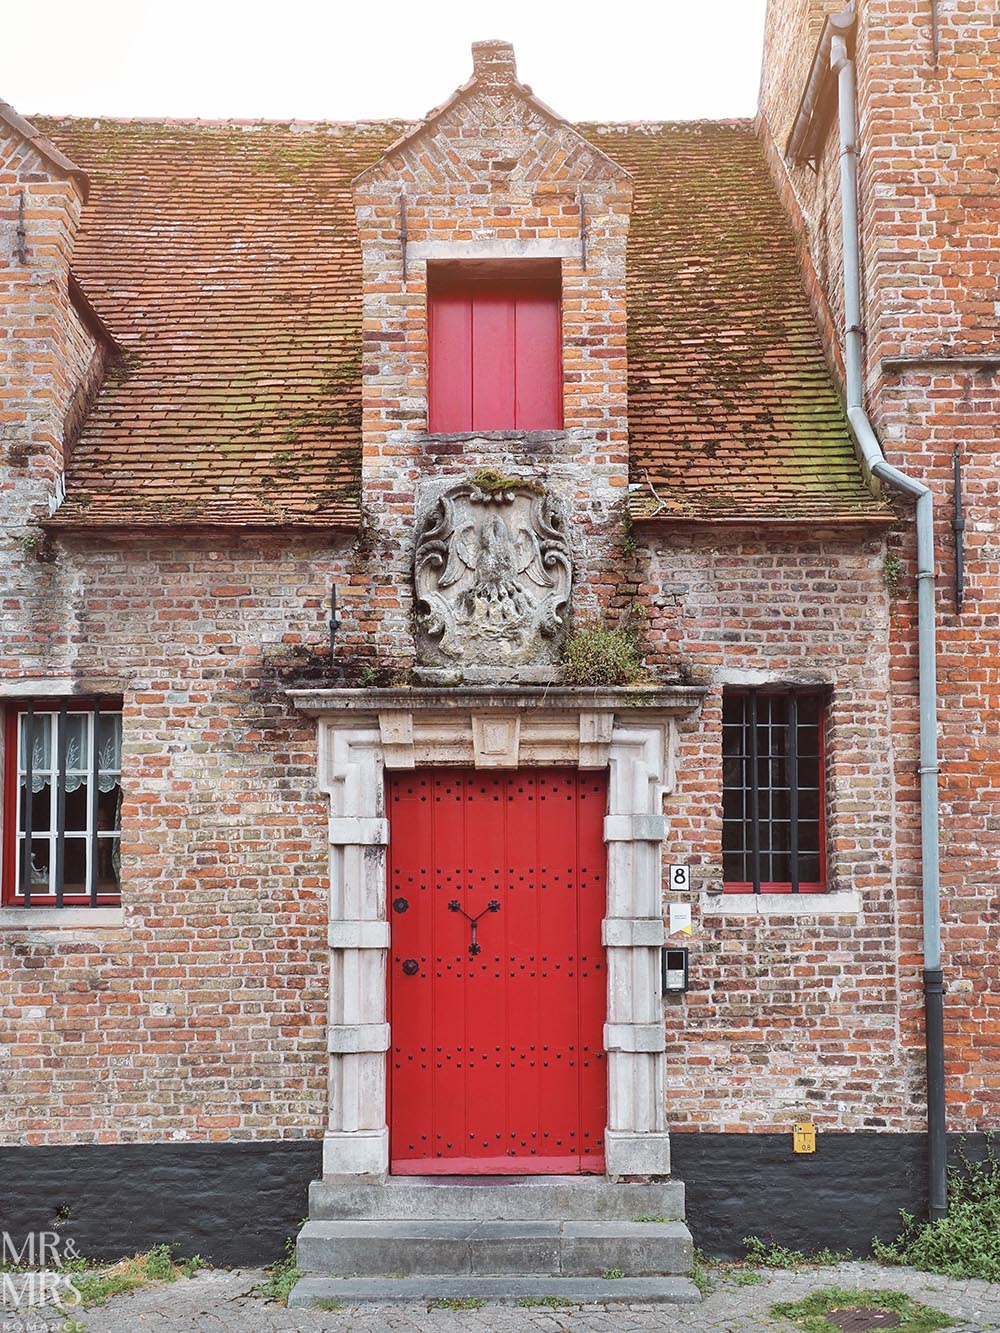 Postcards from Bruges, Belgium - red door